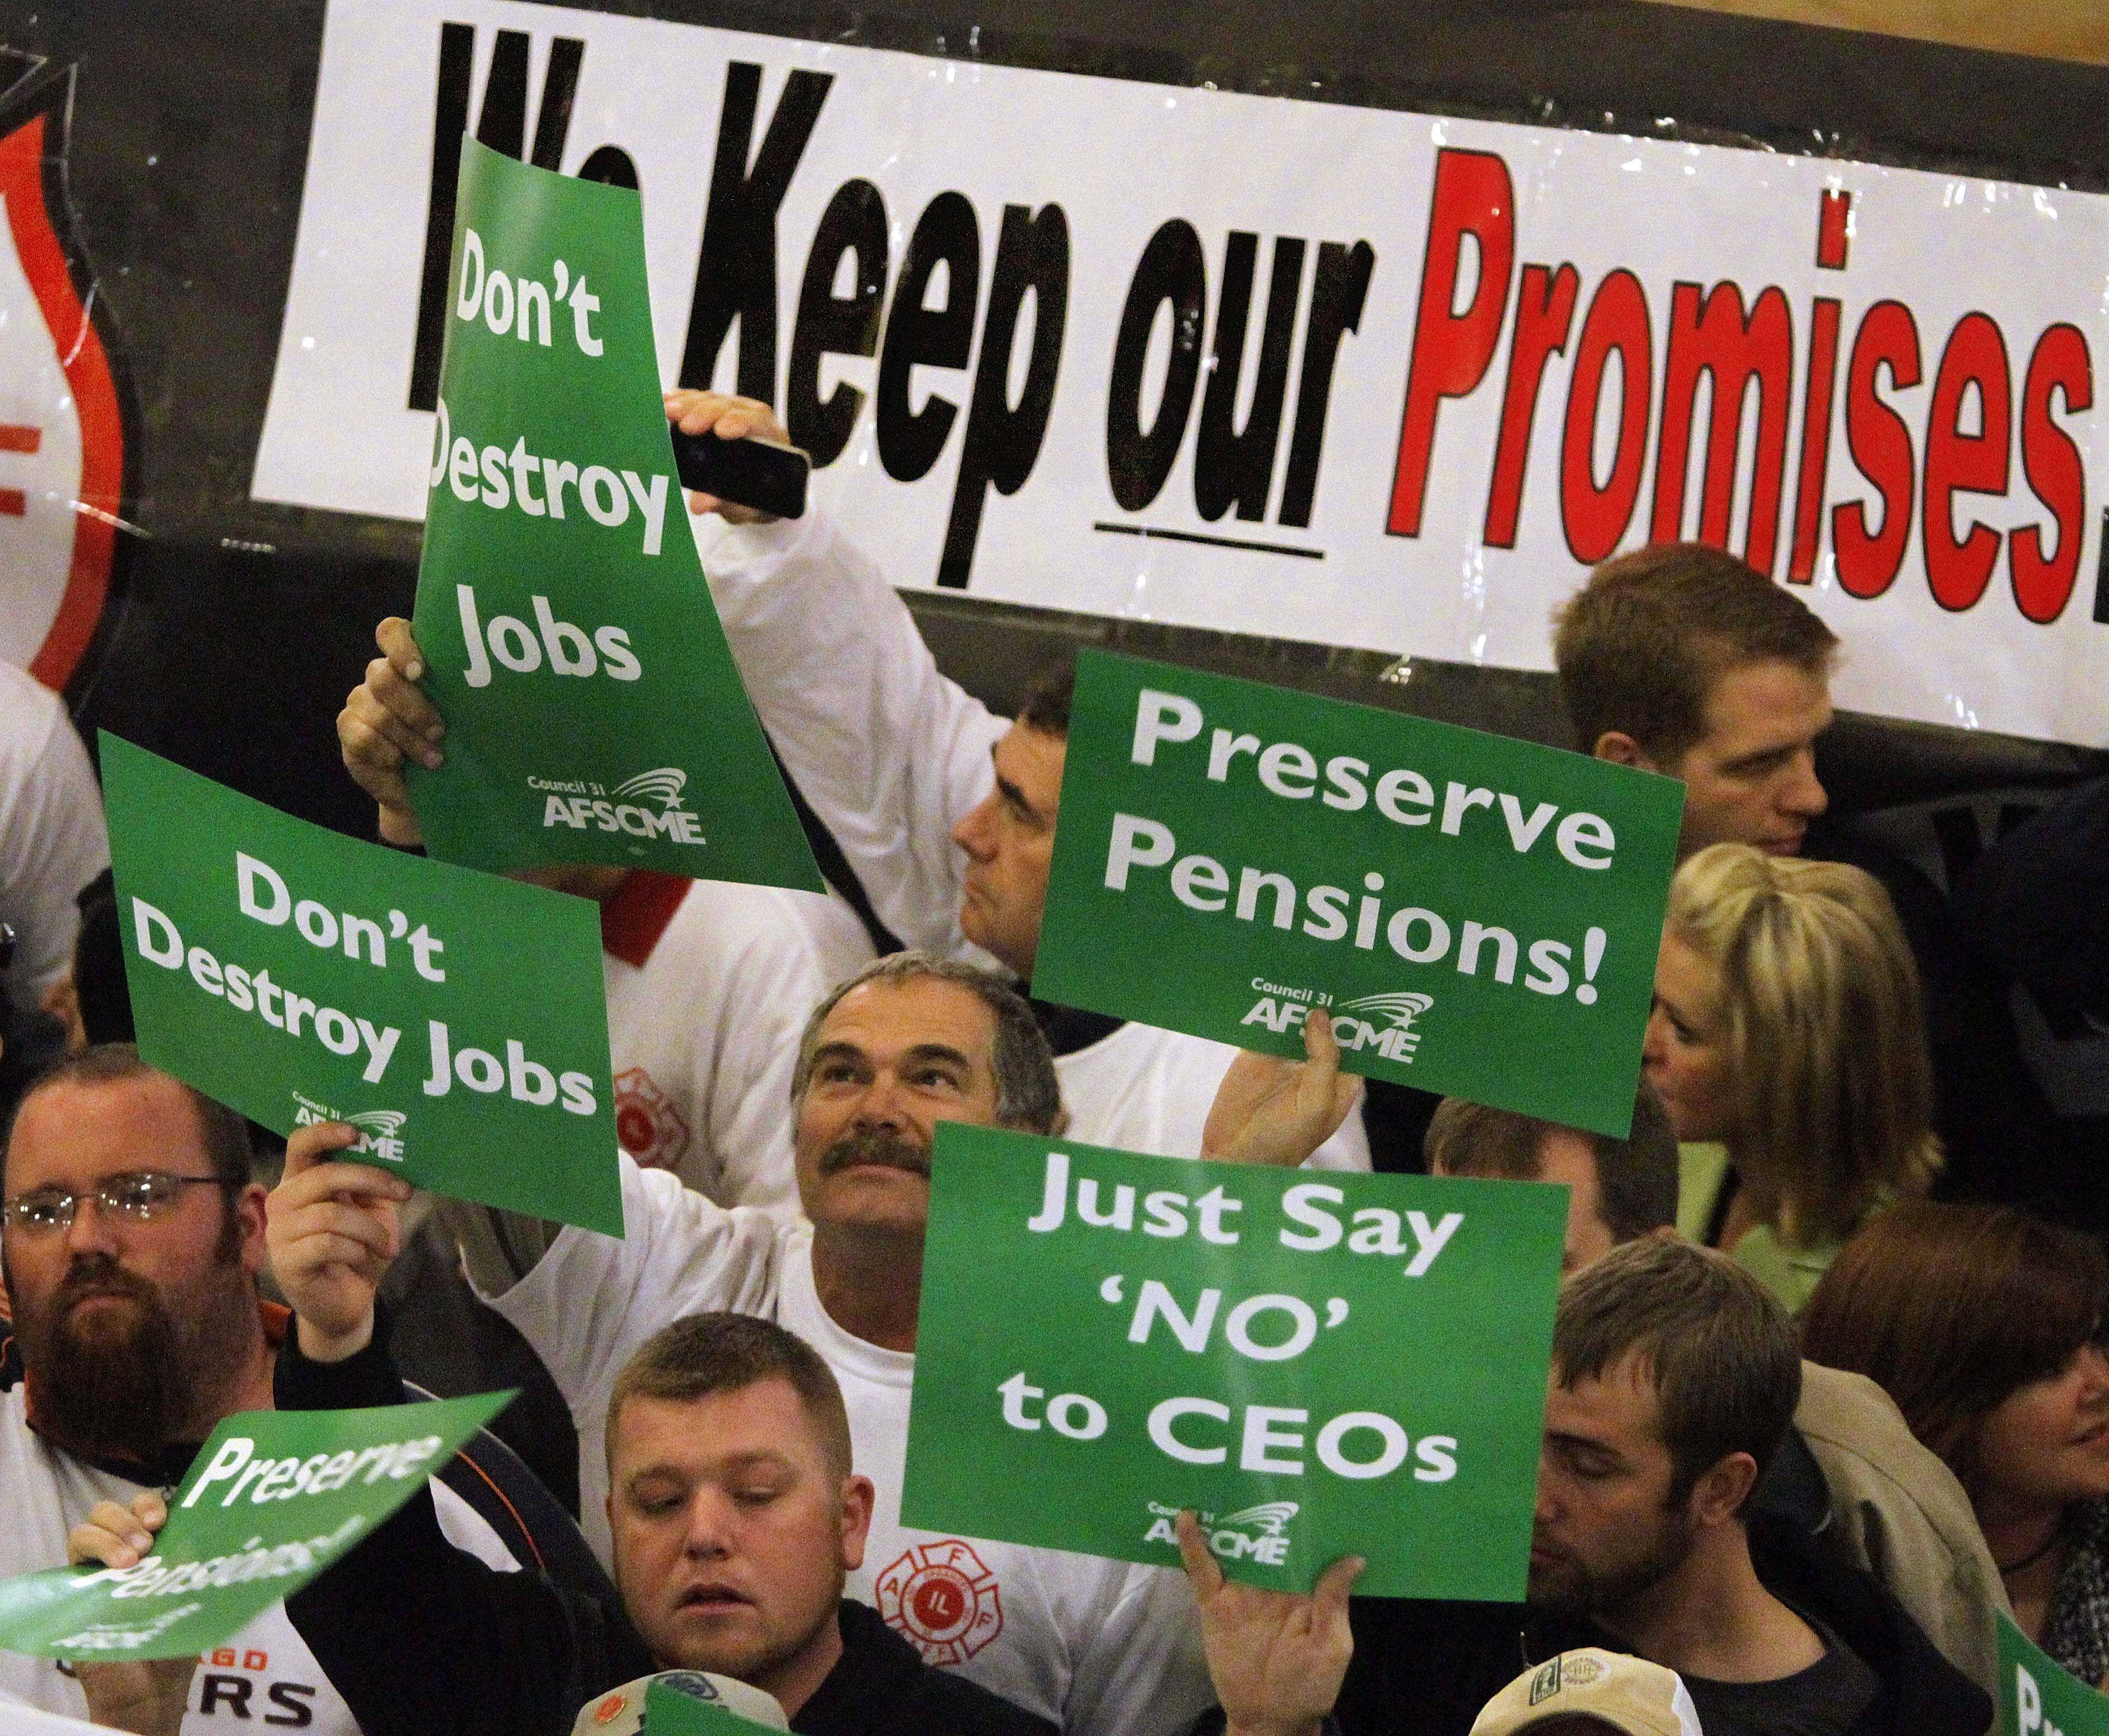 ASSOCIATED PRESSThe pension crisis that resulted in protests such as this in Springfield by teachers and government workers is just one of the issues affecting the public's lack of faith in Illinois government. A history of corruption, a dismal climate for work and business, and political bickering are all reasons Illinoisans give for wanting to live elsewhere.